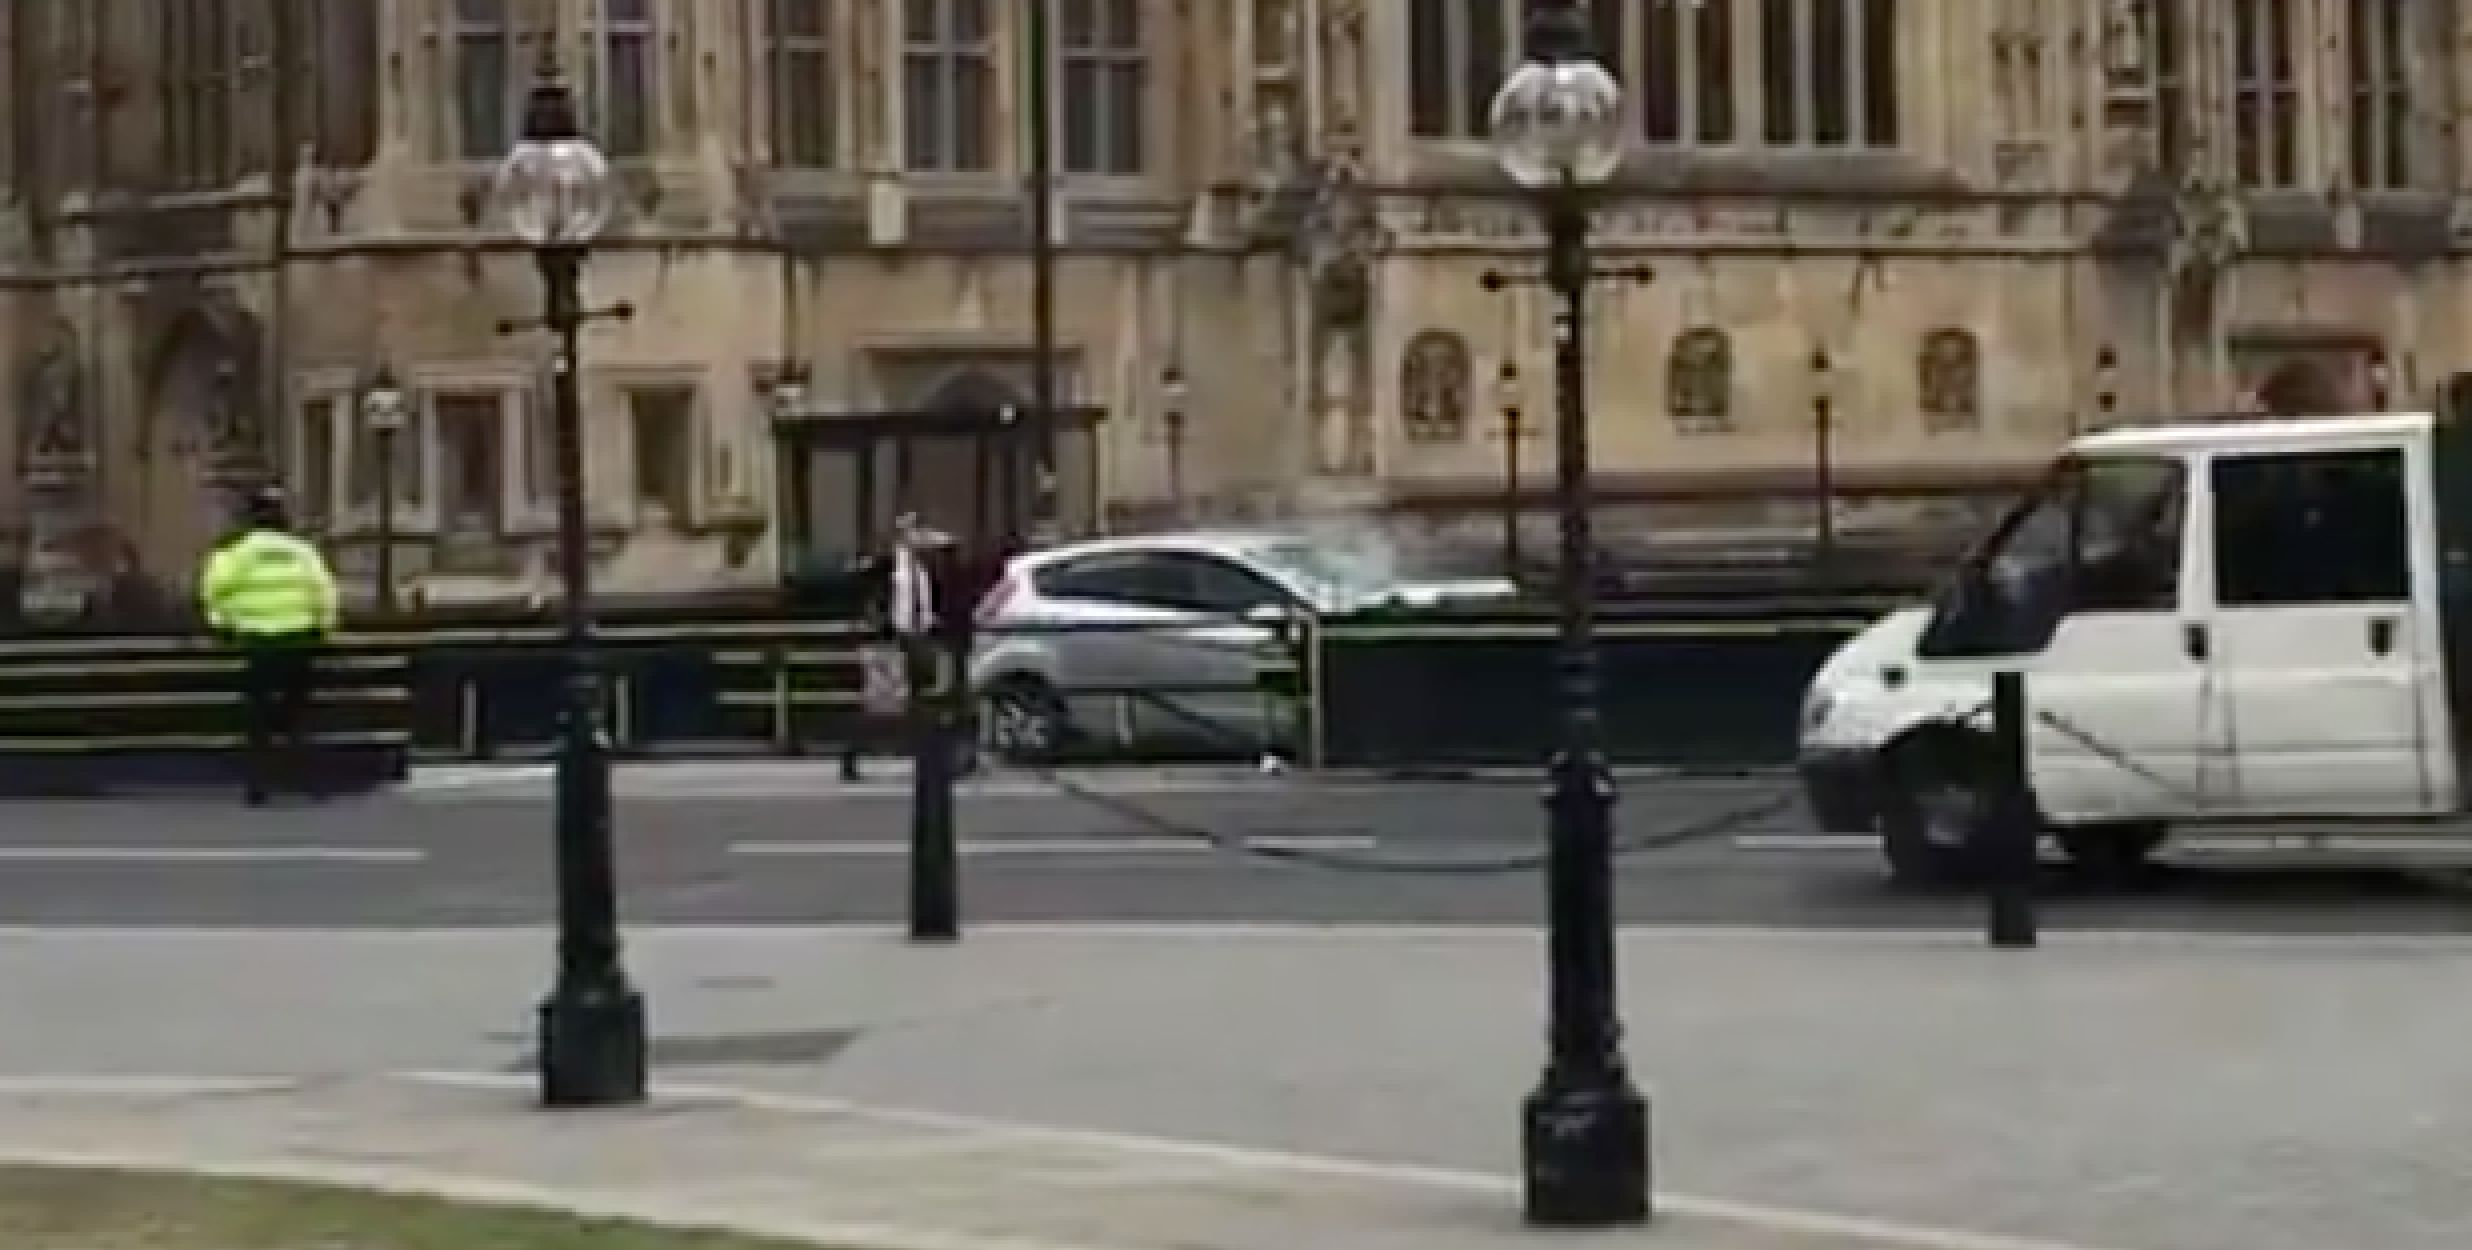 Auto  crashes into barriers outside UK Parliament